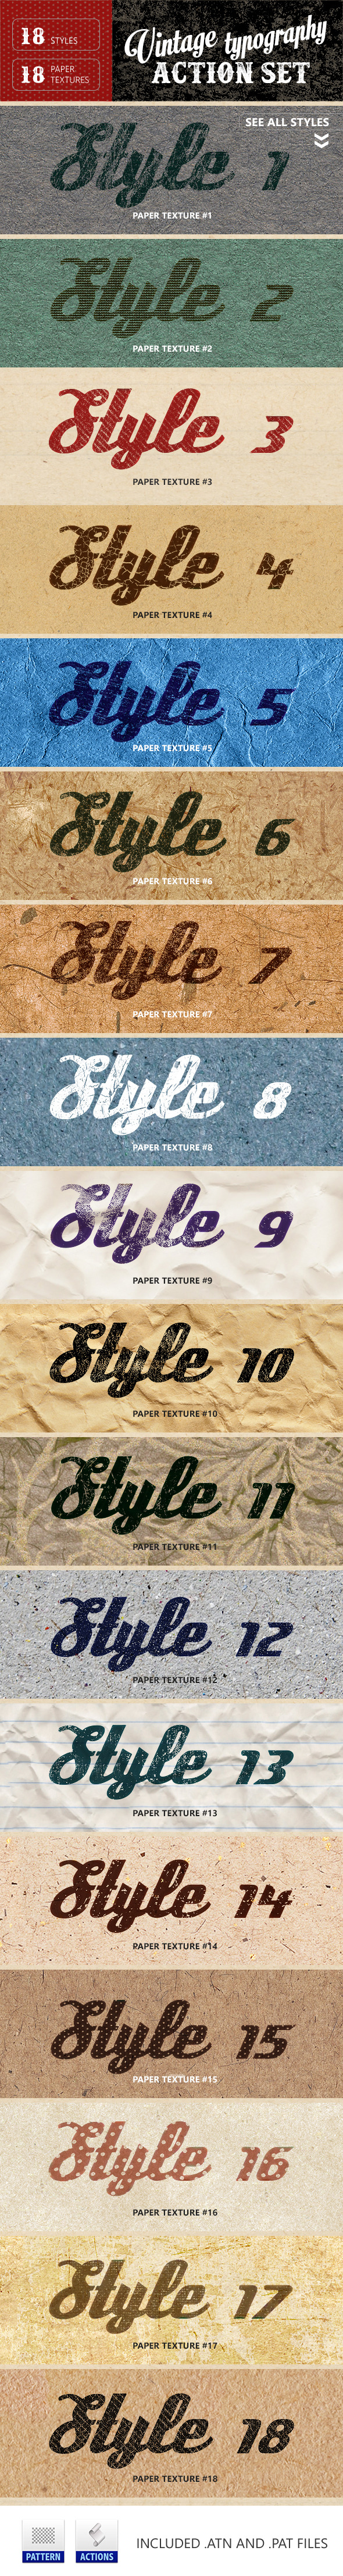 Vintage Typography Letterpress + Paper Textures - Text Effects Actions